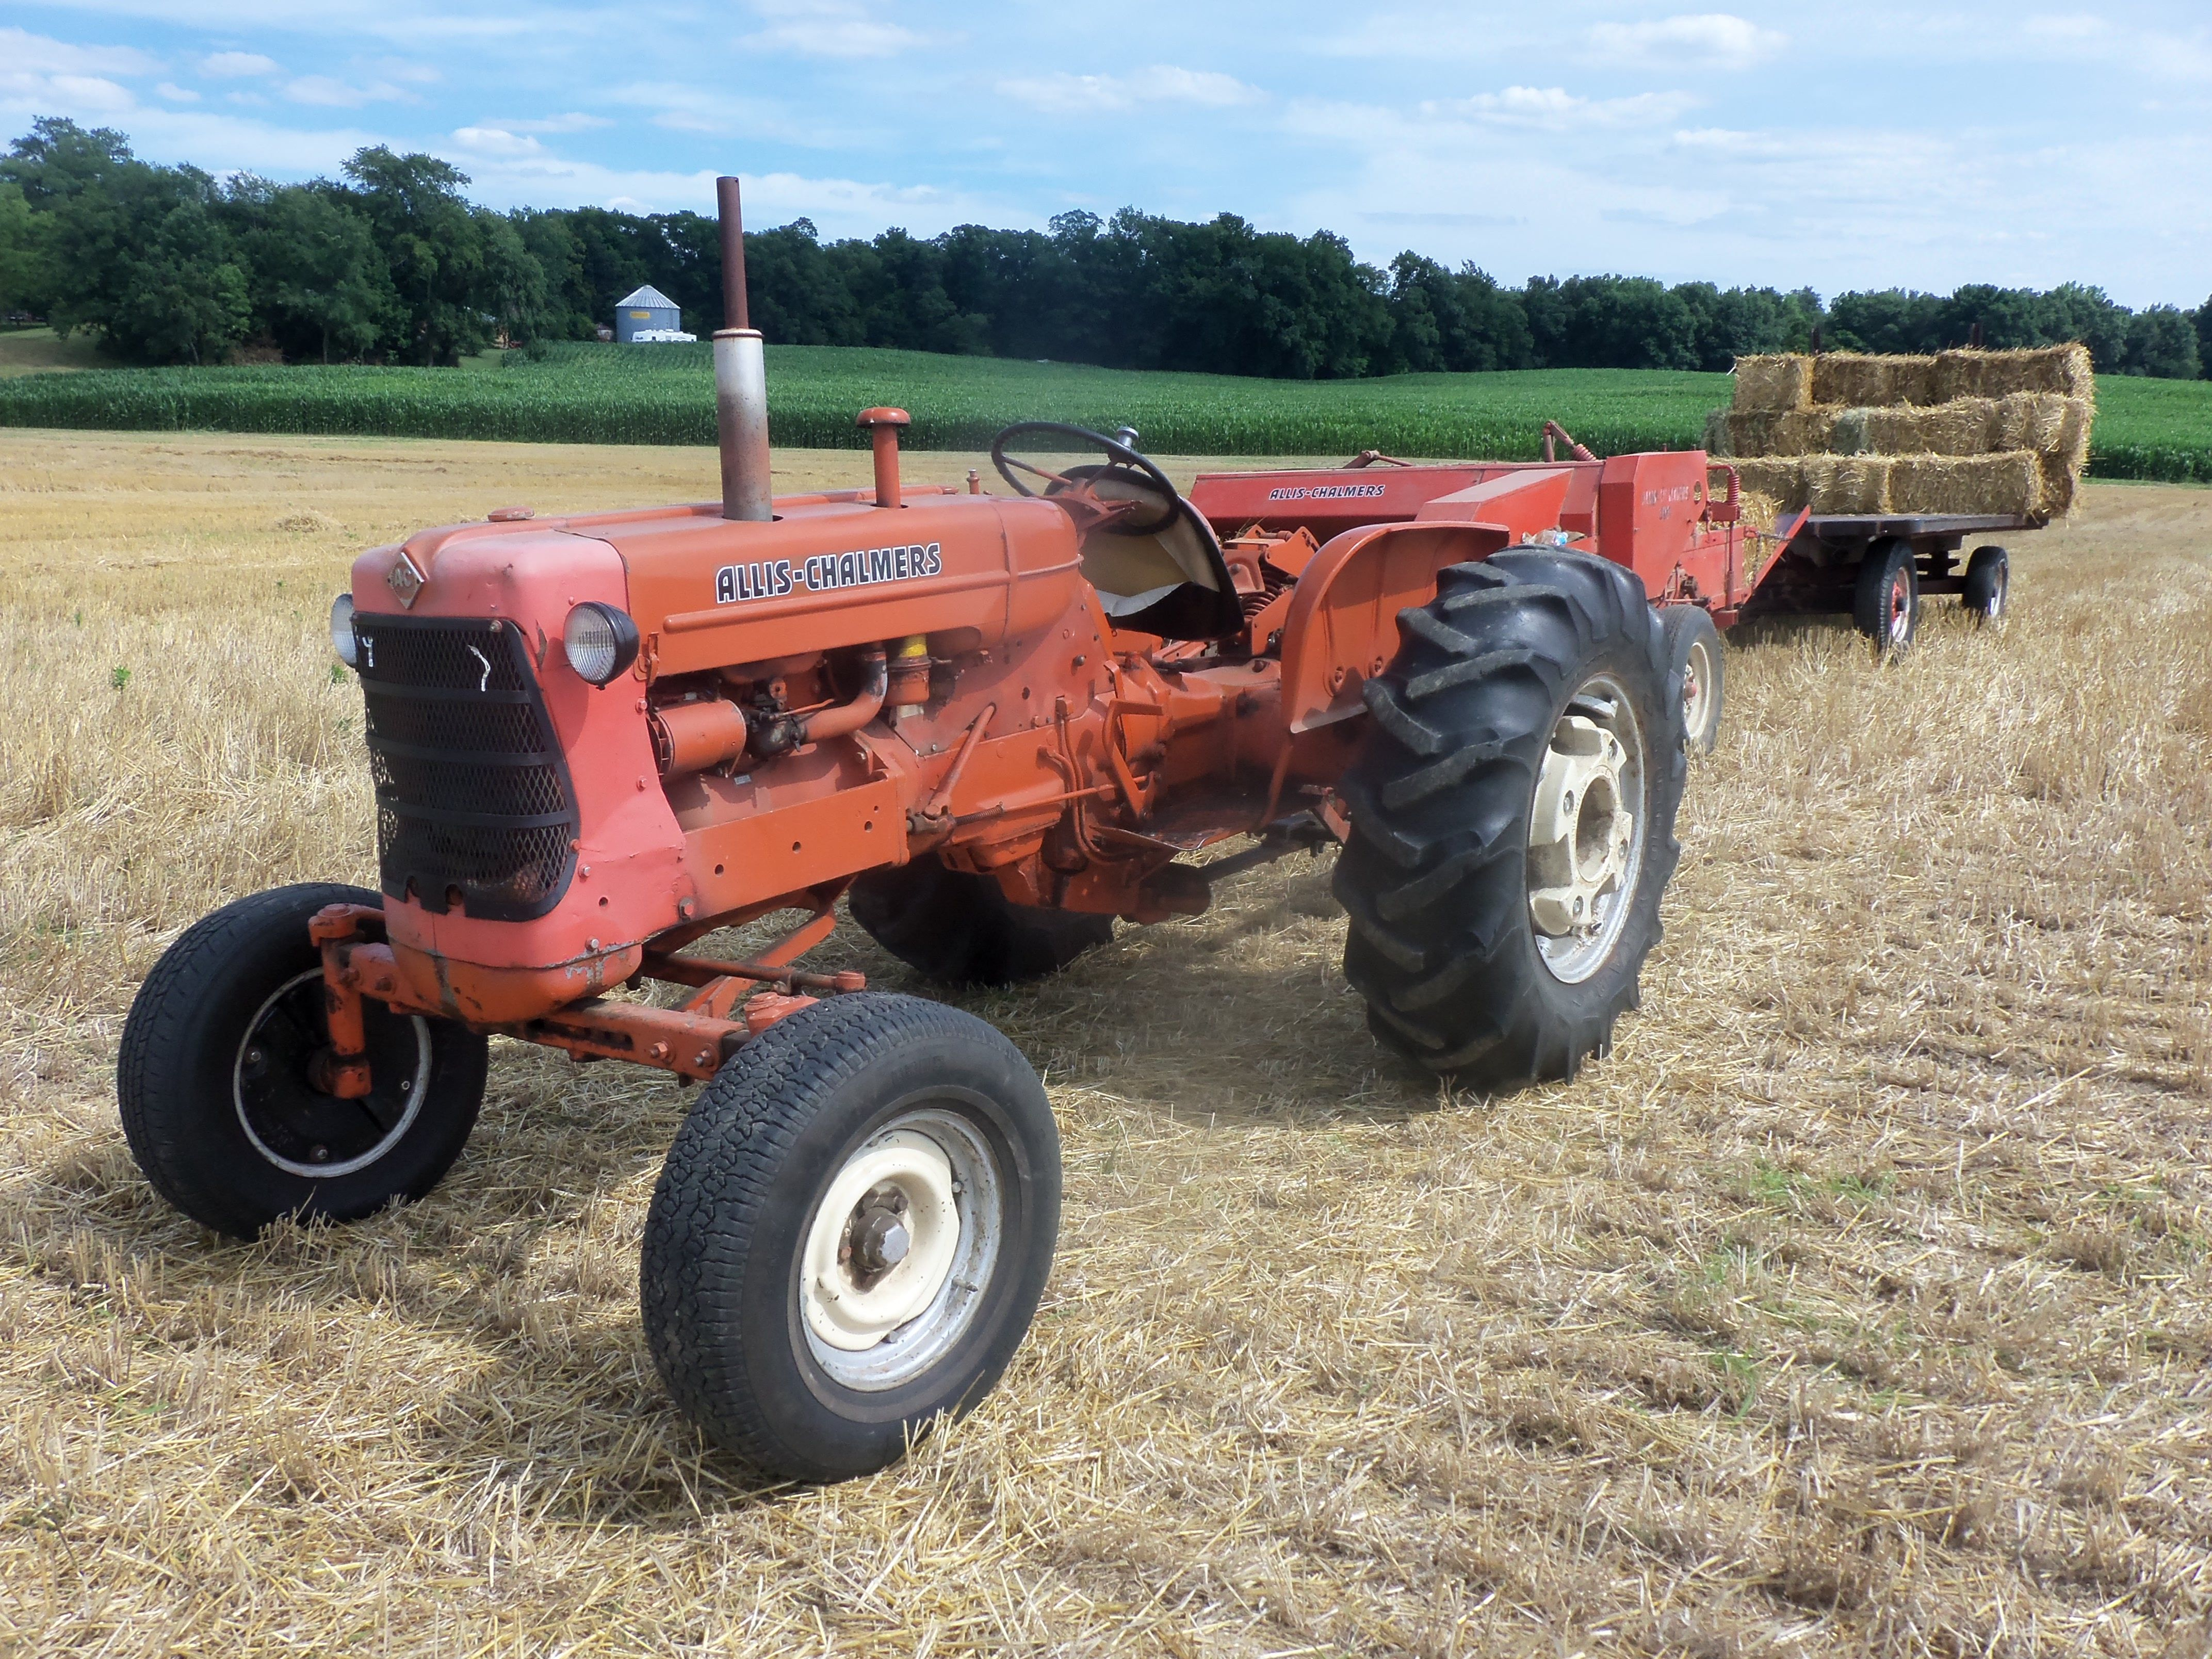 Tractor Pulled Wagon : Allis chalmers d pulling hay baler wagon